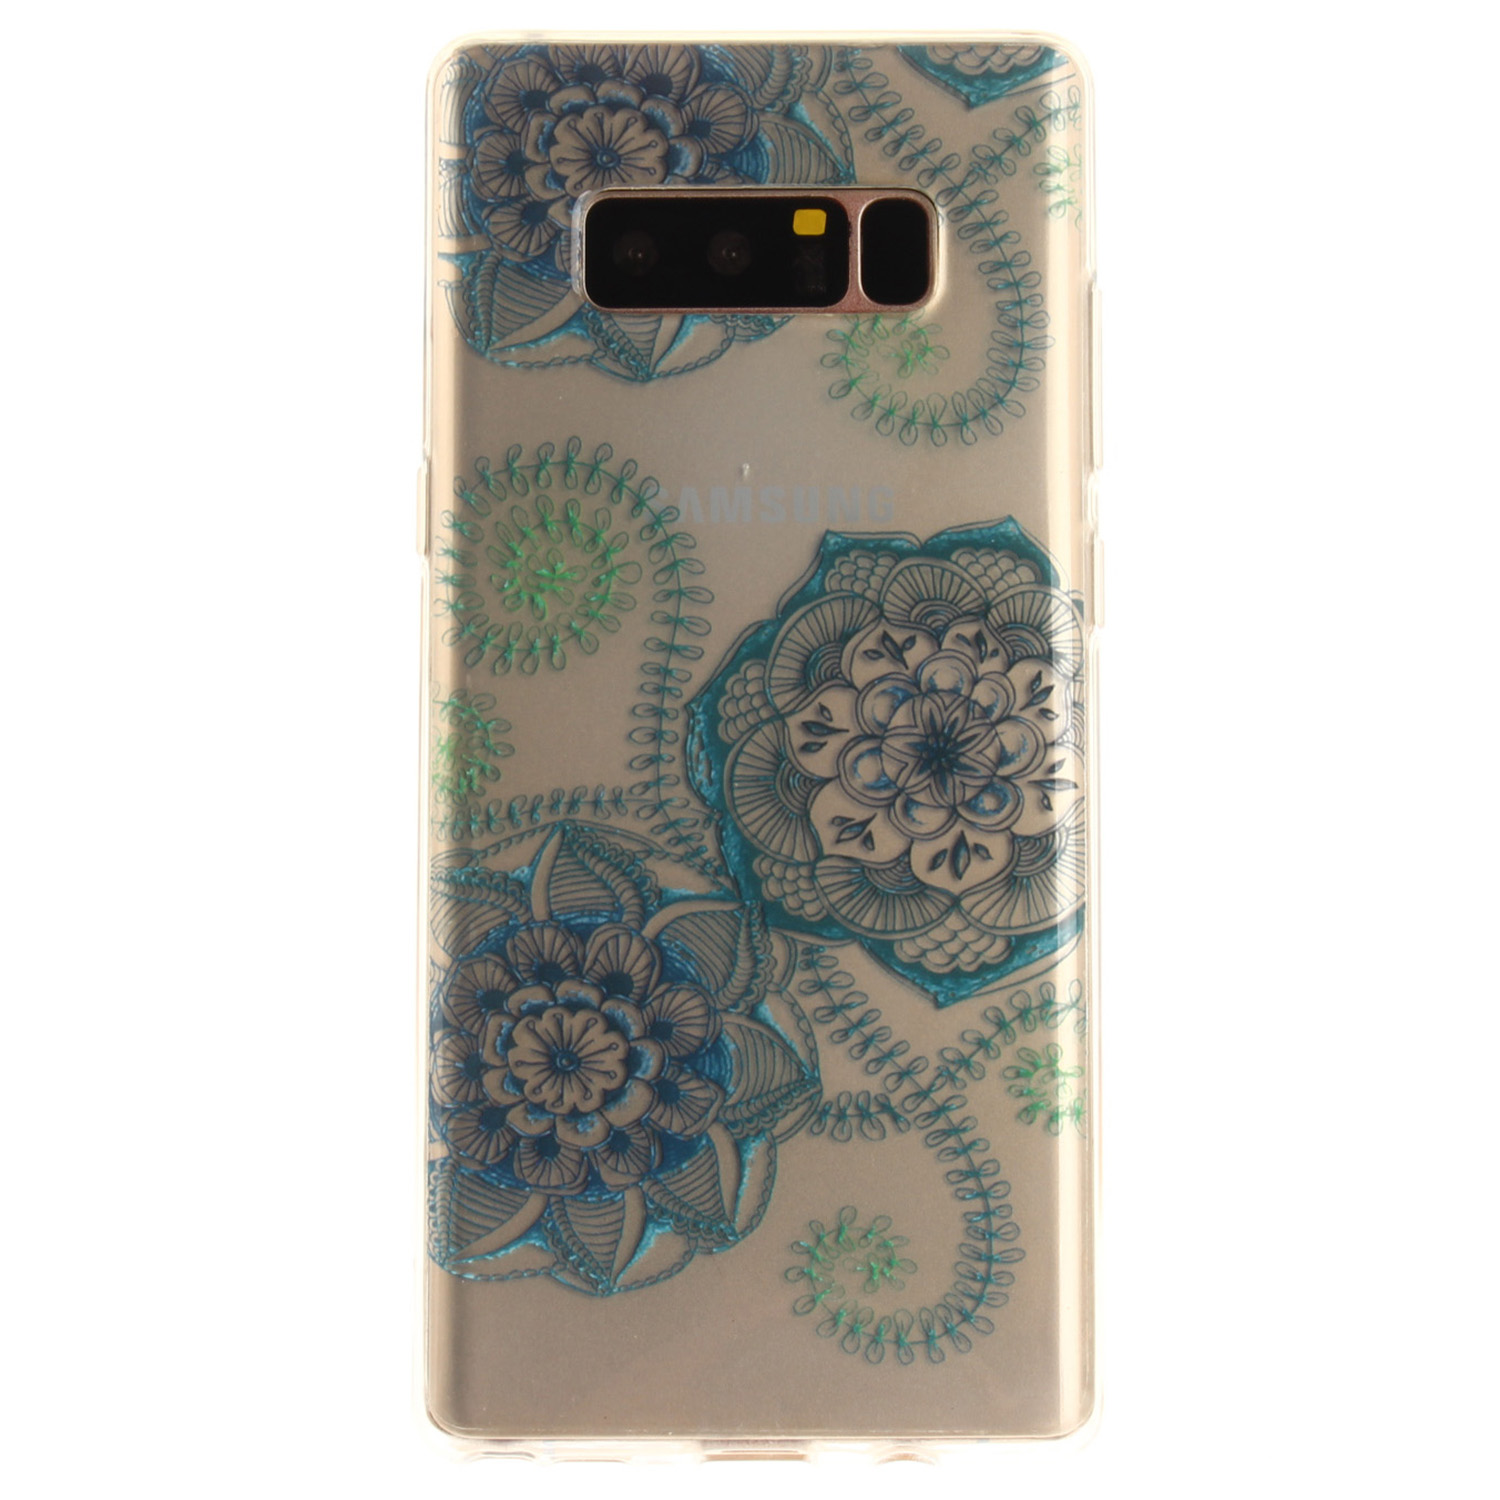 Samsung Galaxy Note 8 Case Pattern Printed Clear Soft Protective Cover for Samsung Note 8